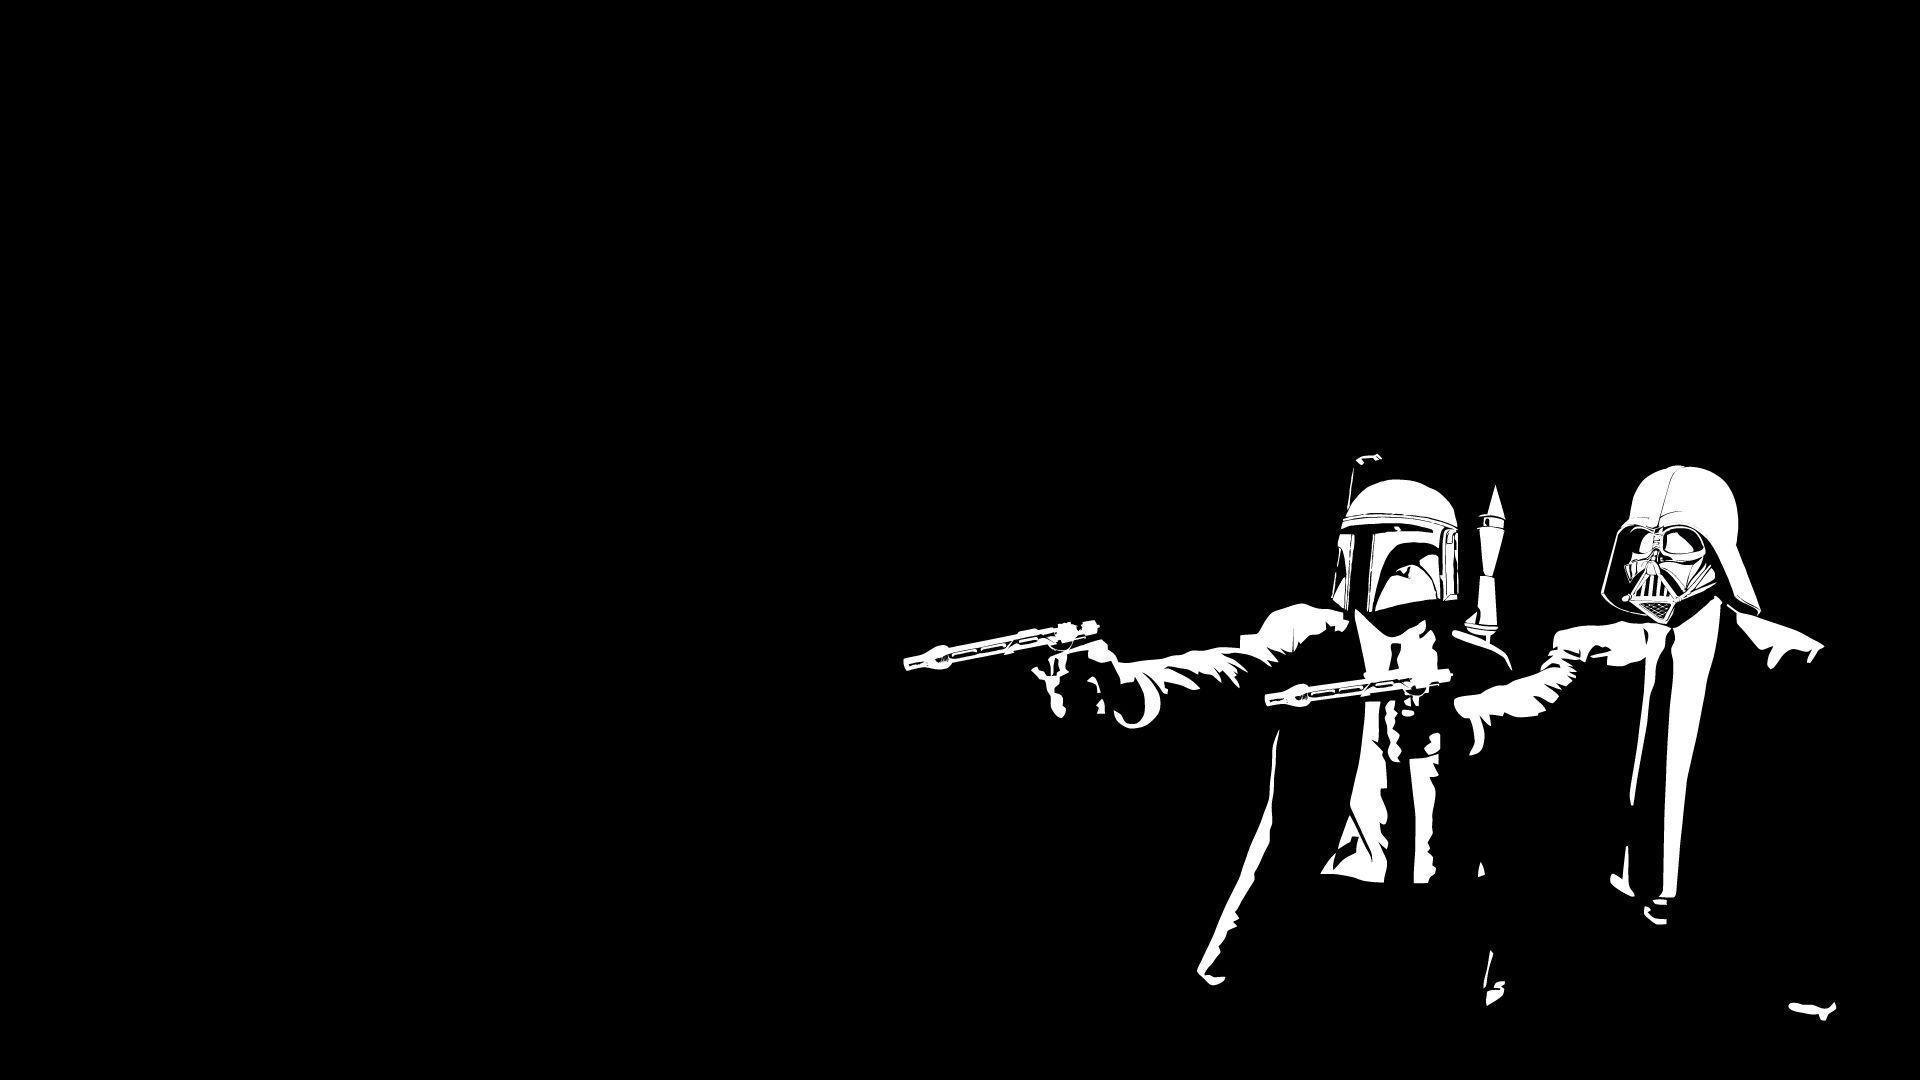 481 Star Wars Wallpapers